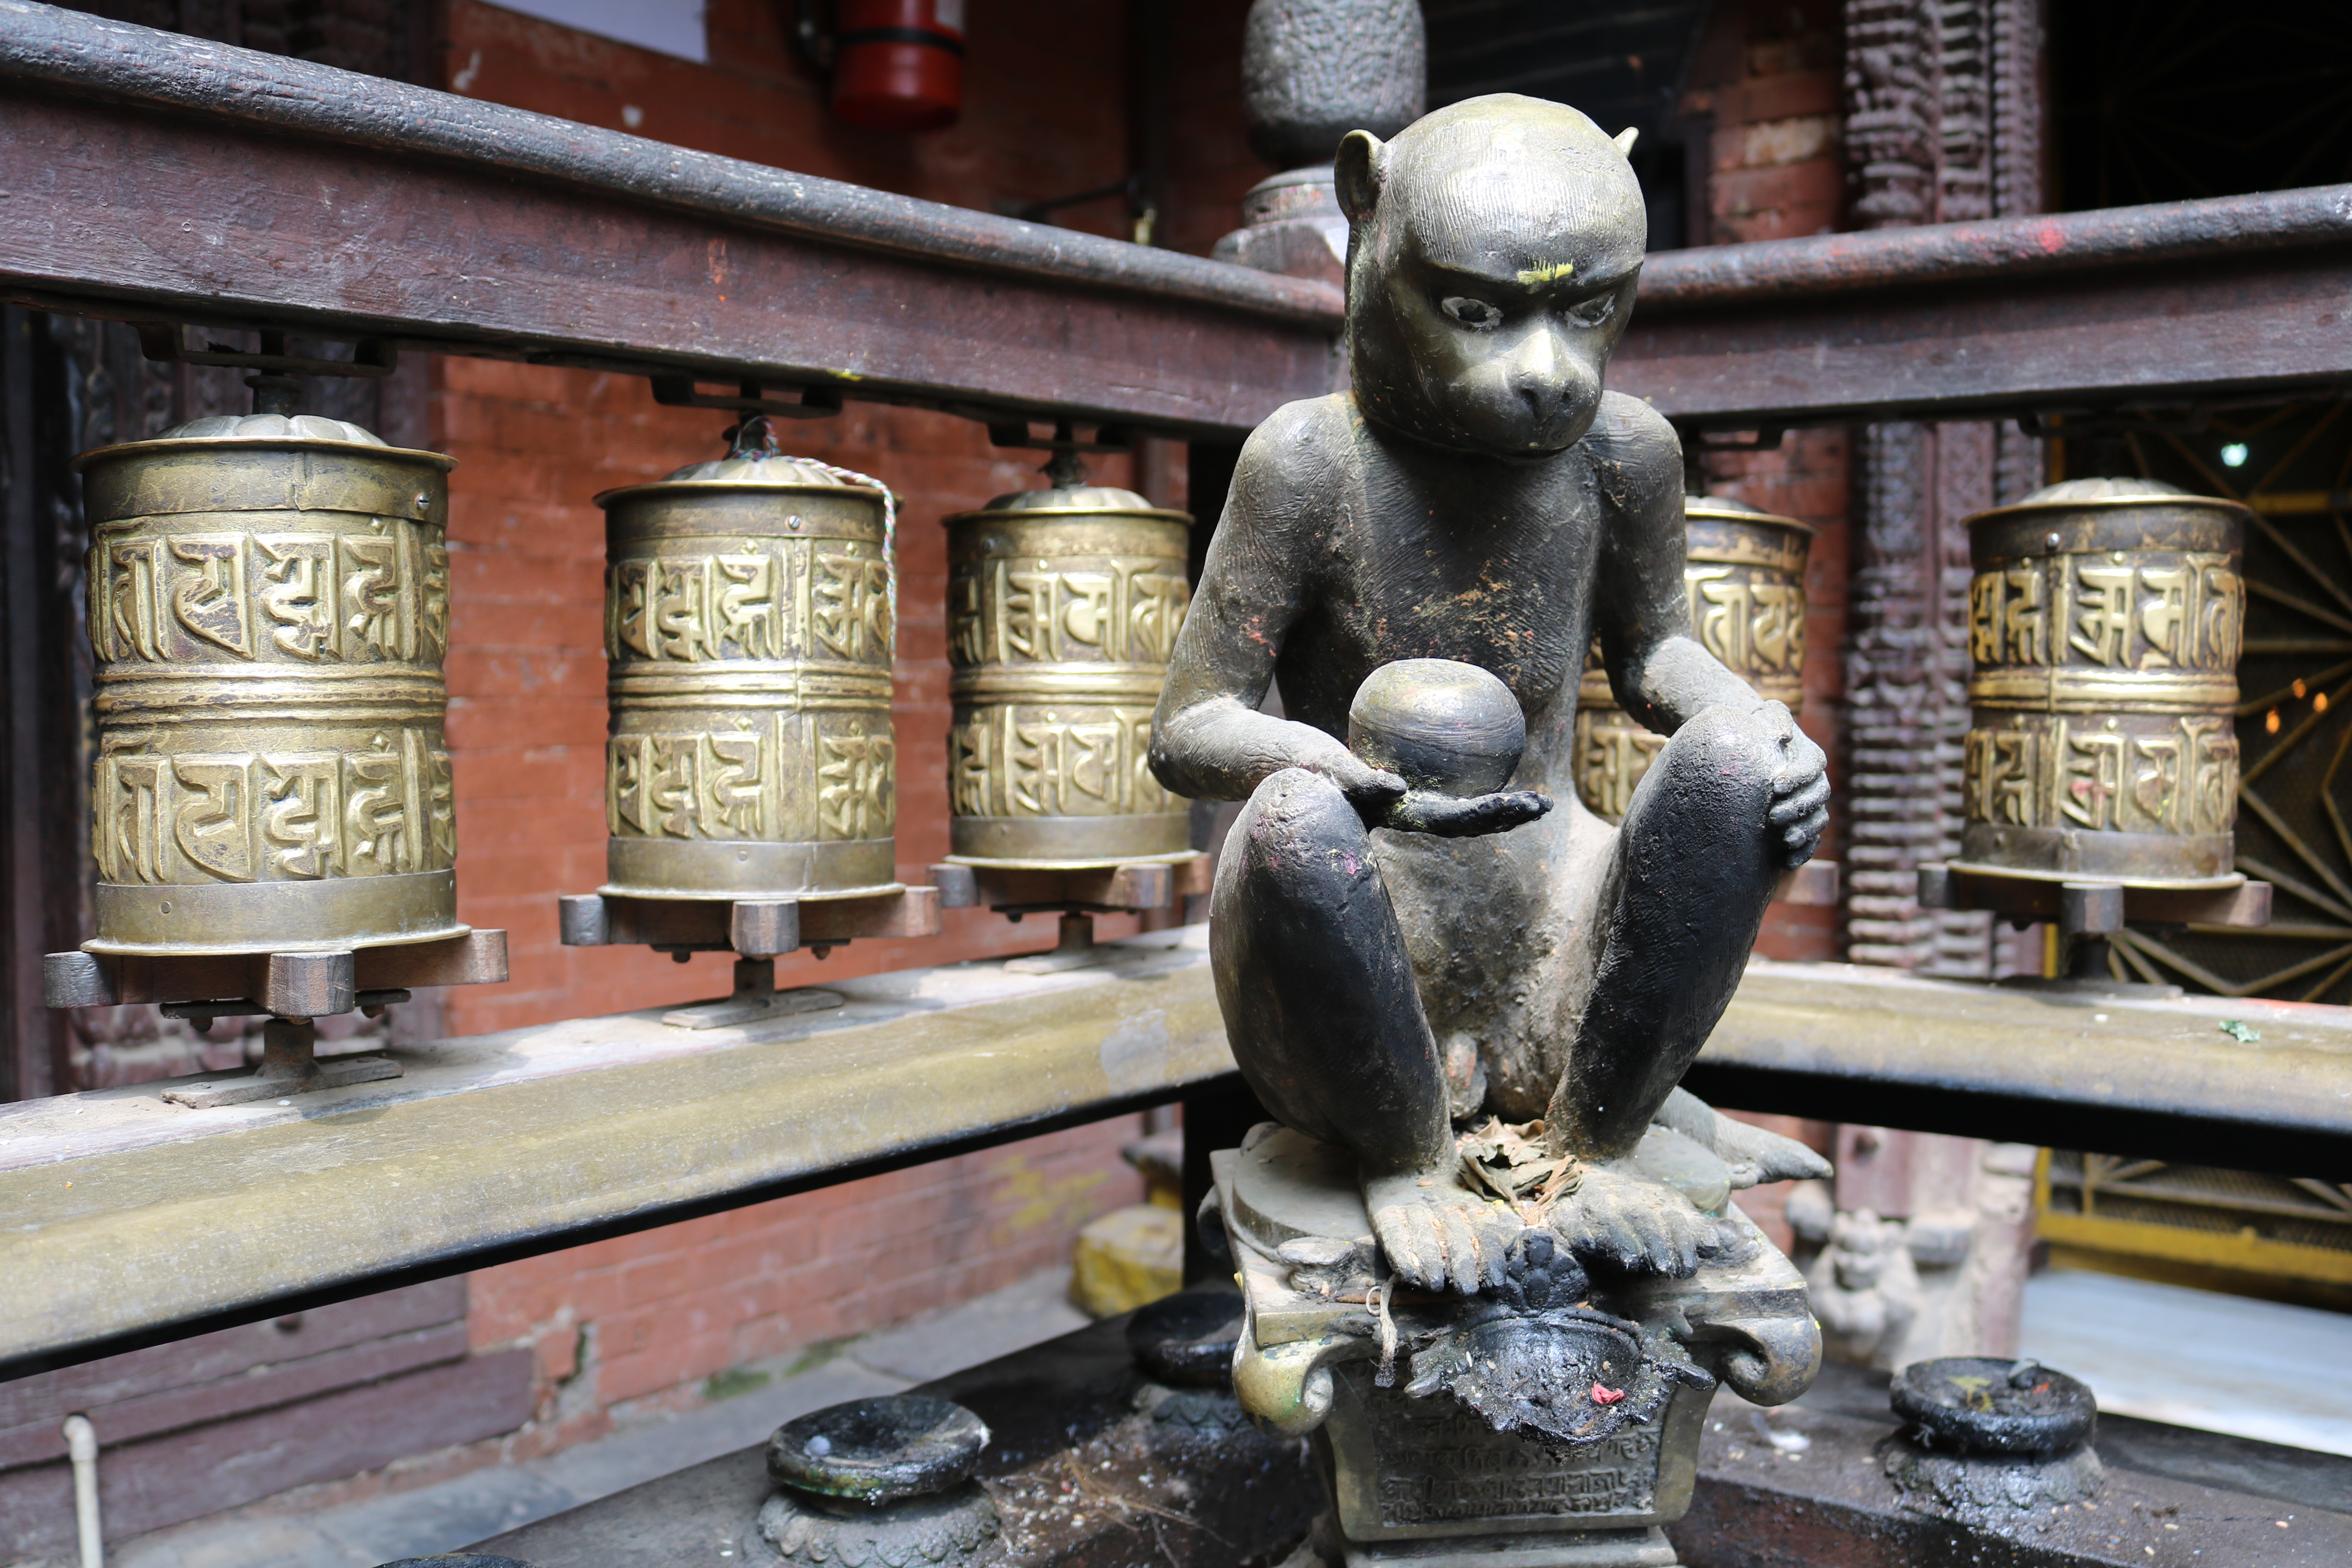 Prayer wheels and monkey at Golden Temple